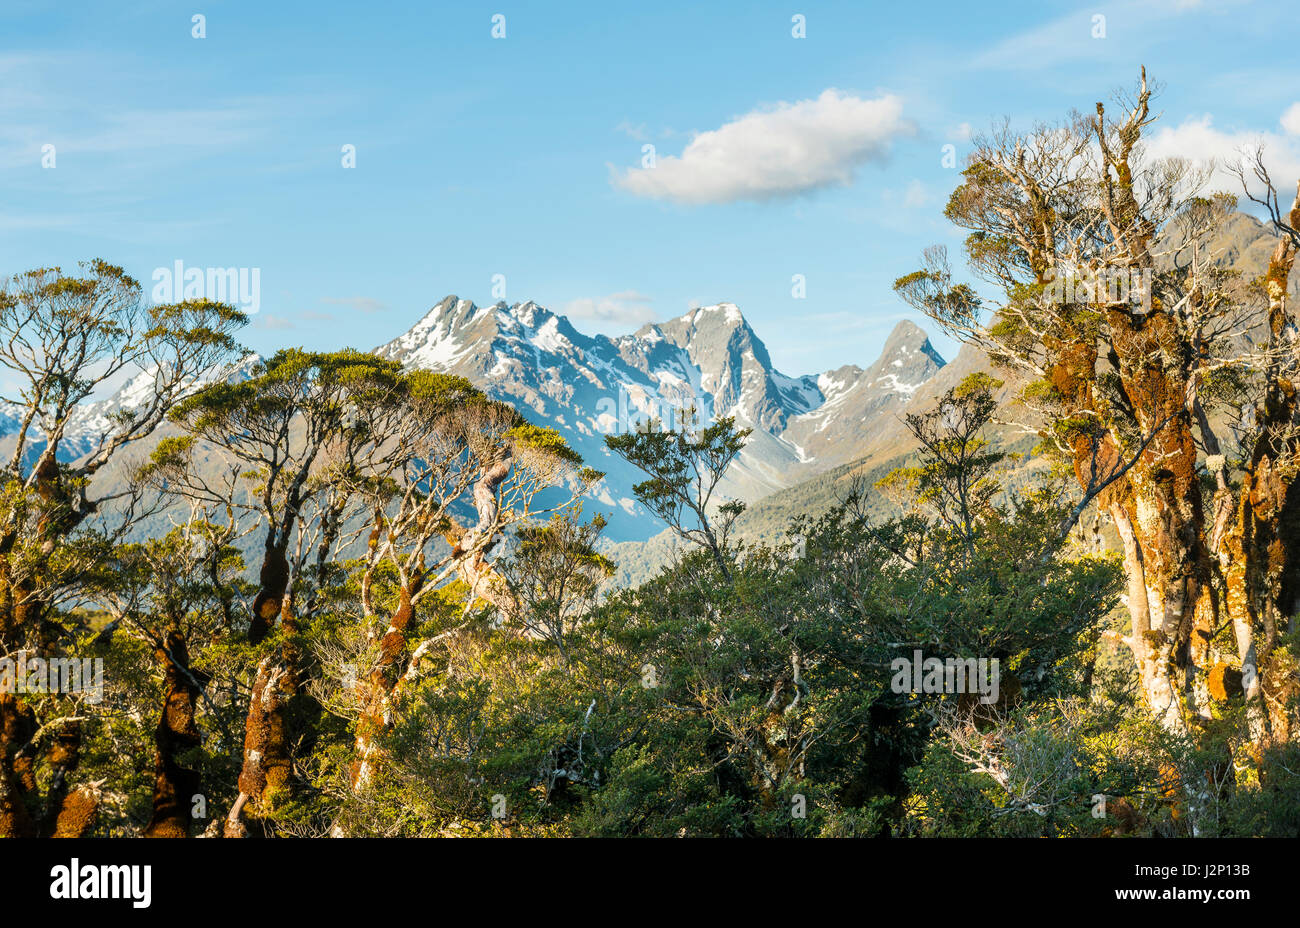 Tropical trees in front of snowy Ailsa Mountains, Key Summit Track, Fiordland National Park, Southland Region, New Stock Photo